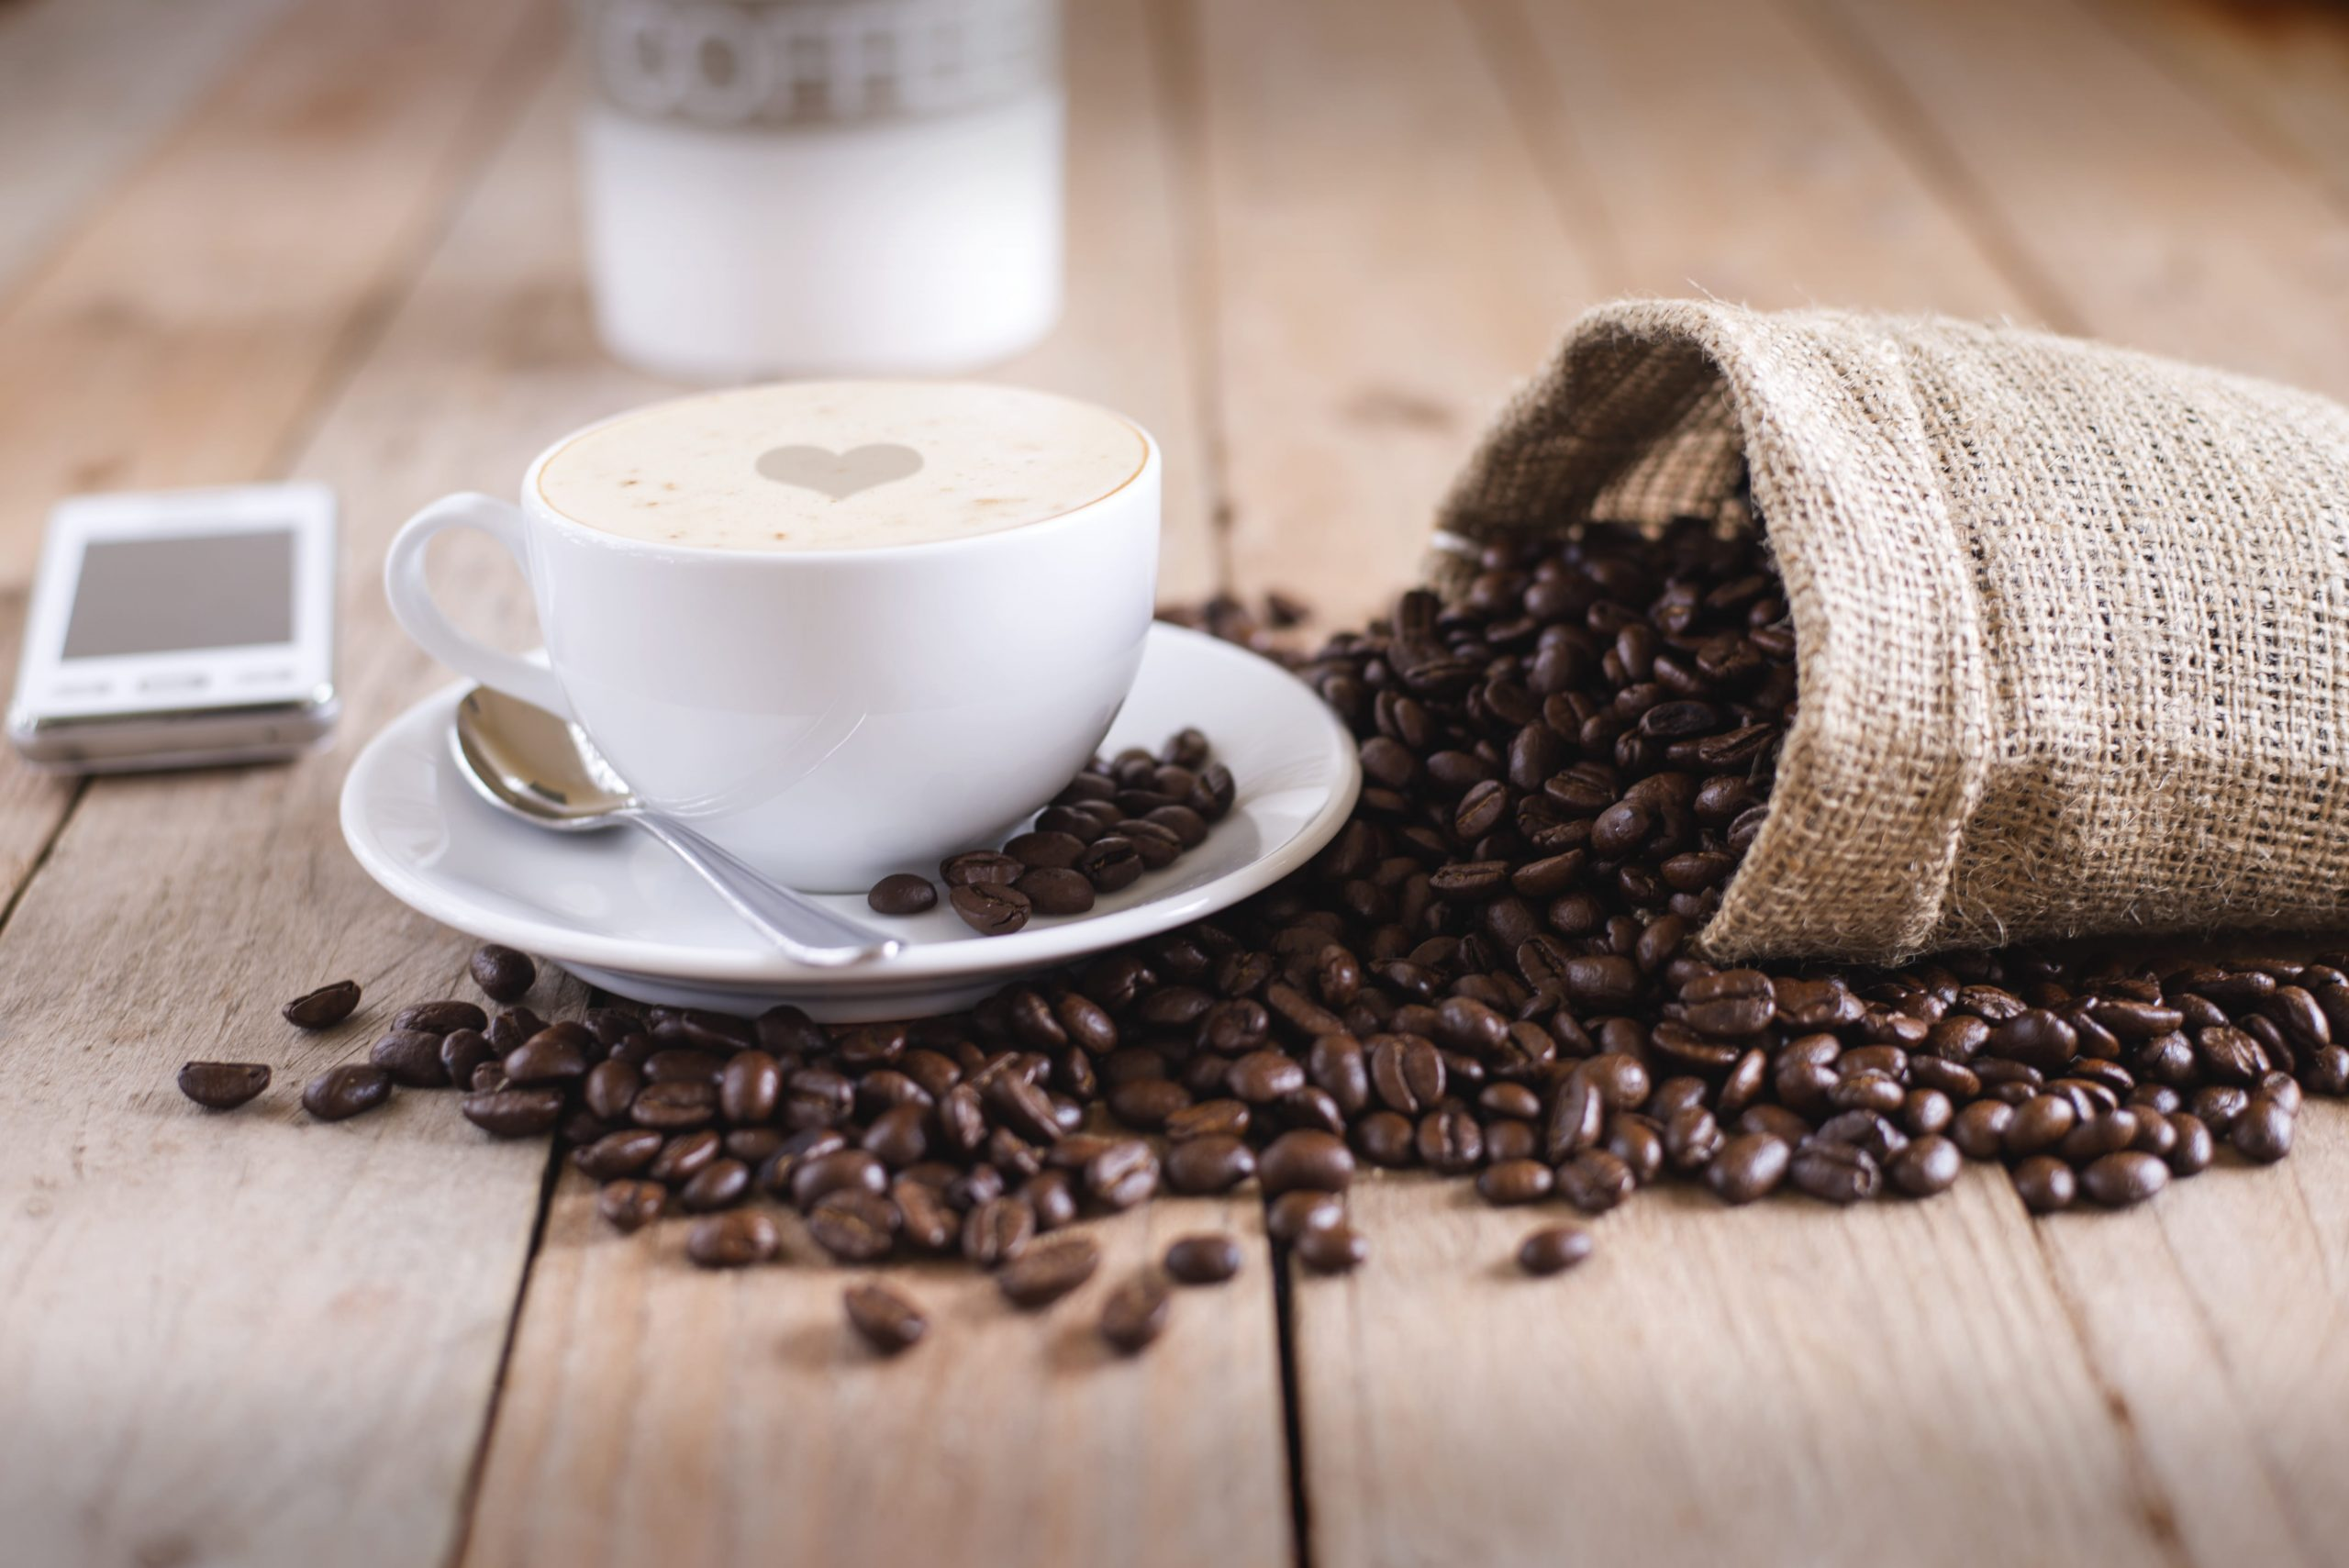 Things to Know About Caffeine